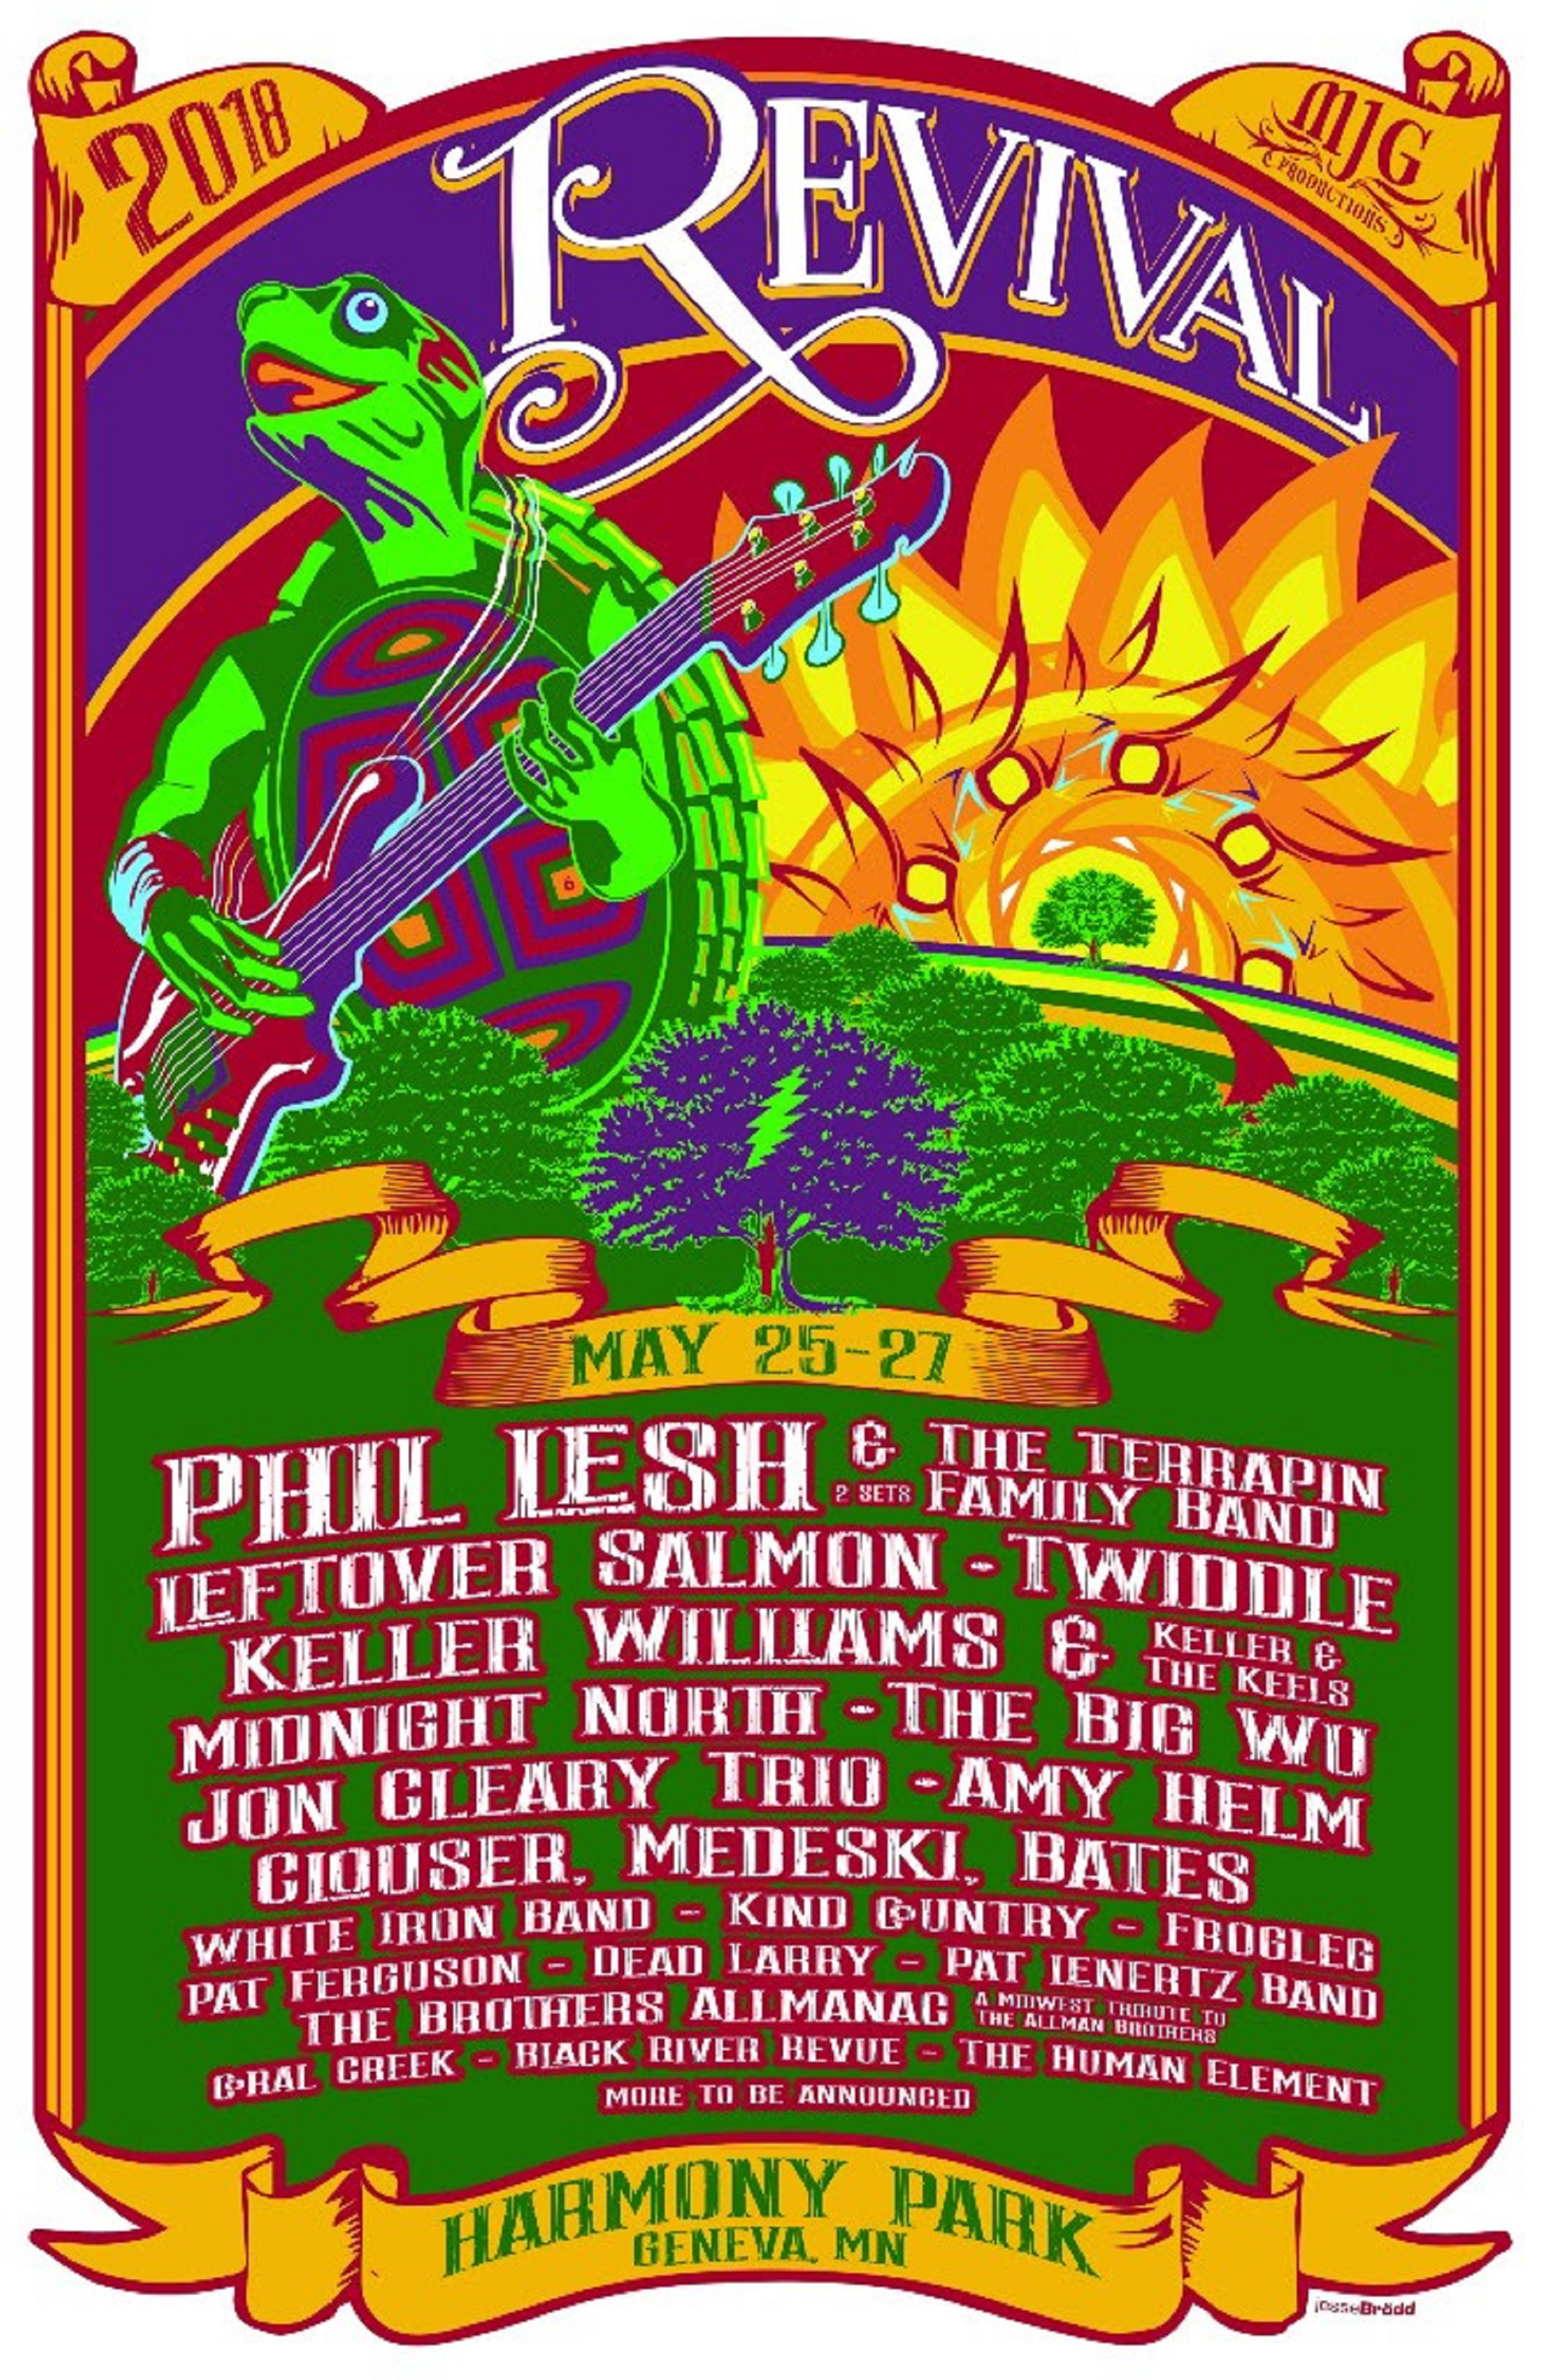 Phil Lesh & The Terrapin Family Band to Headline Revival Music Festival